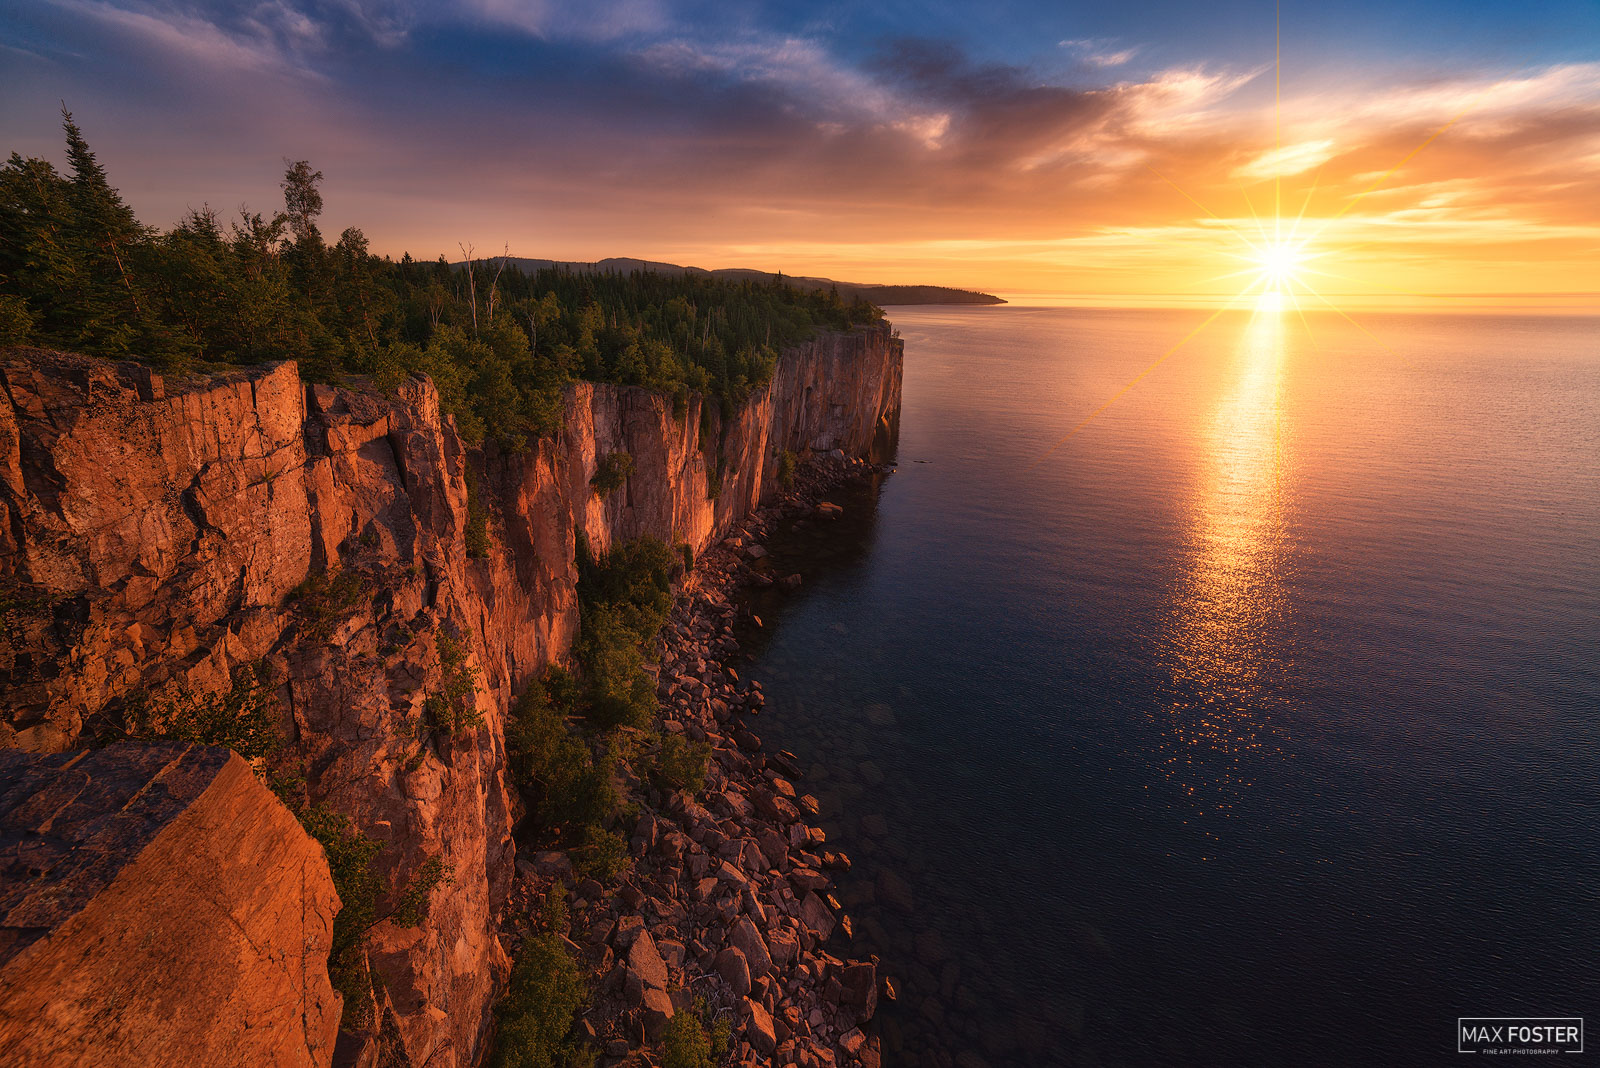 Palisade Head, Silver Bay, Minnesota, Superior Vista, North Shore, Lake Superior, Tettegouche State Park, Duluth, photo